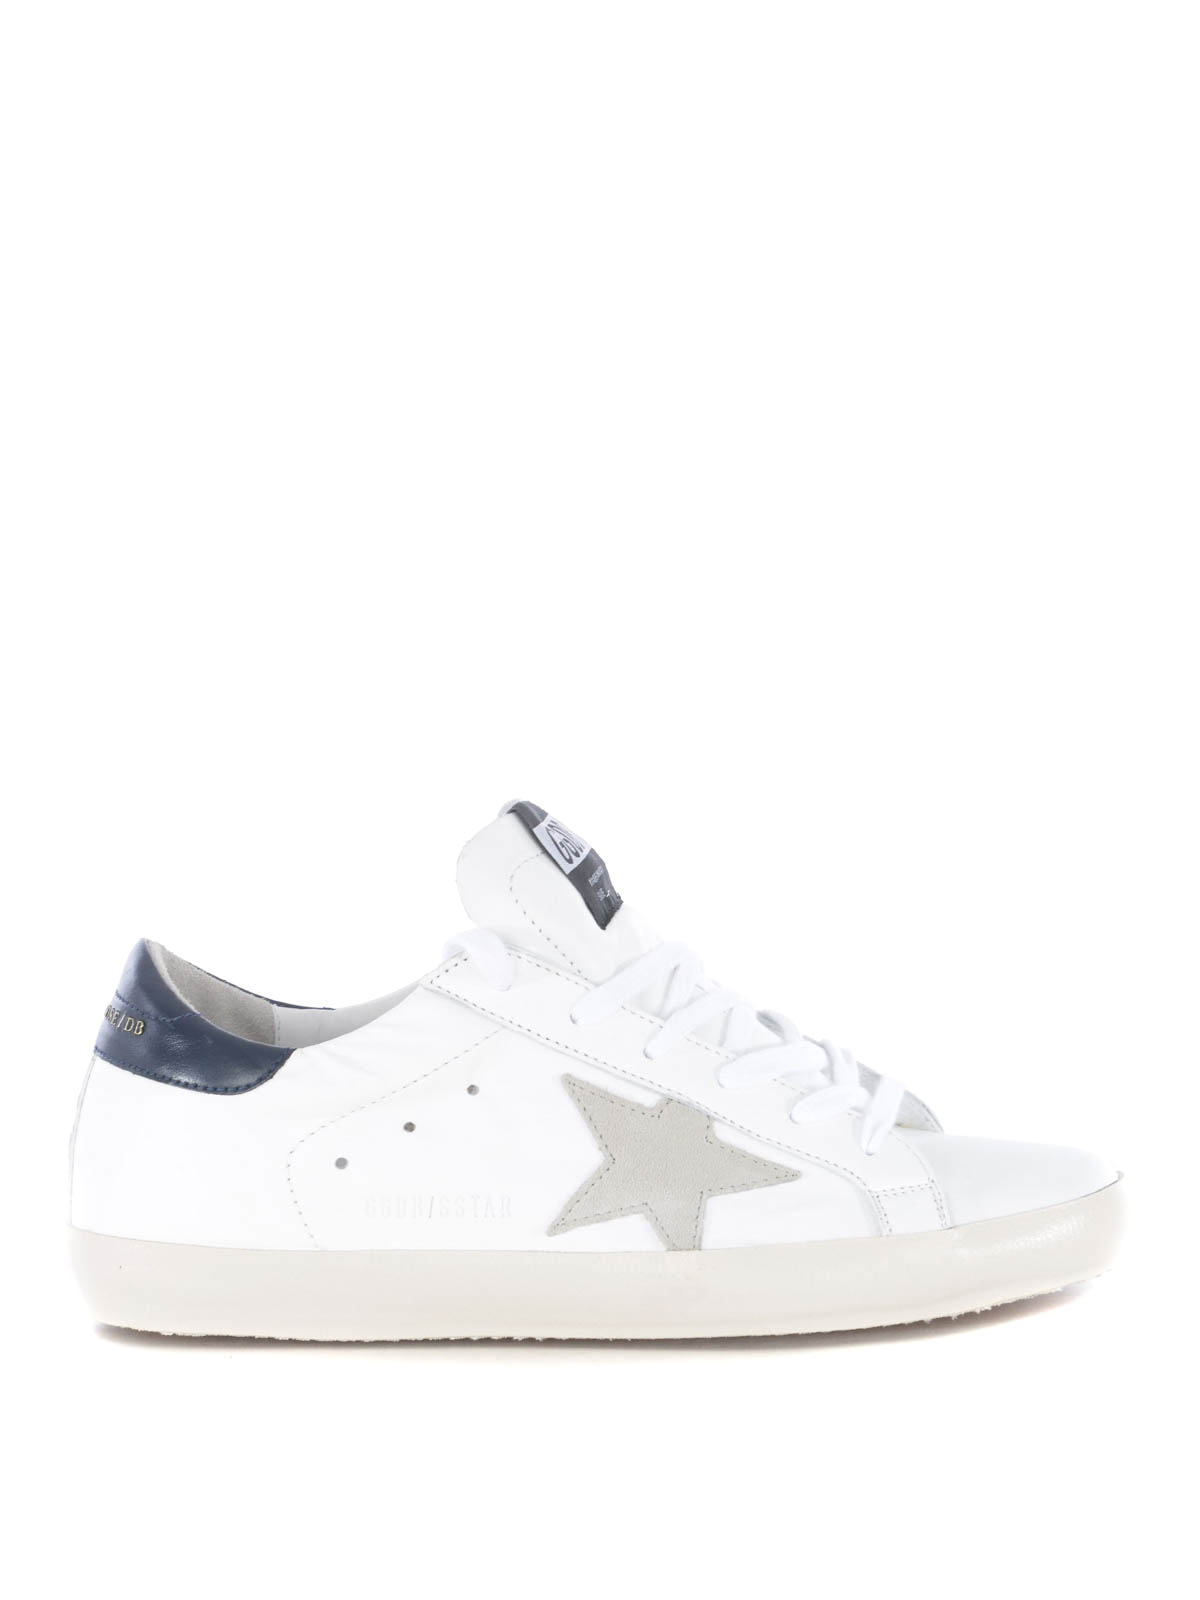 b38f522c3b6 Golden Goose - Superstar white leather low-top sneakers - trainers ...